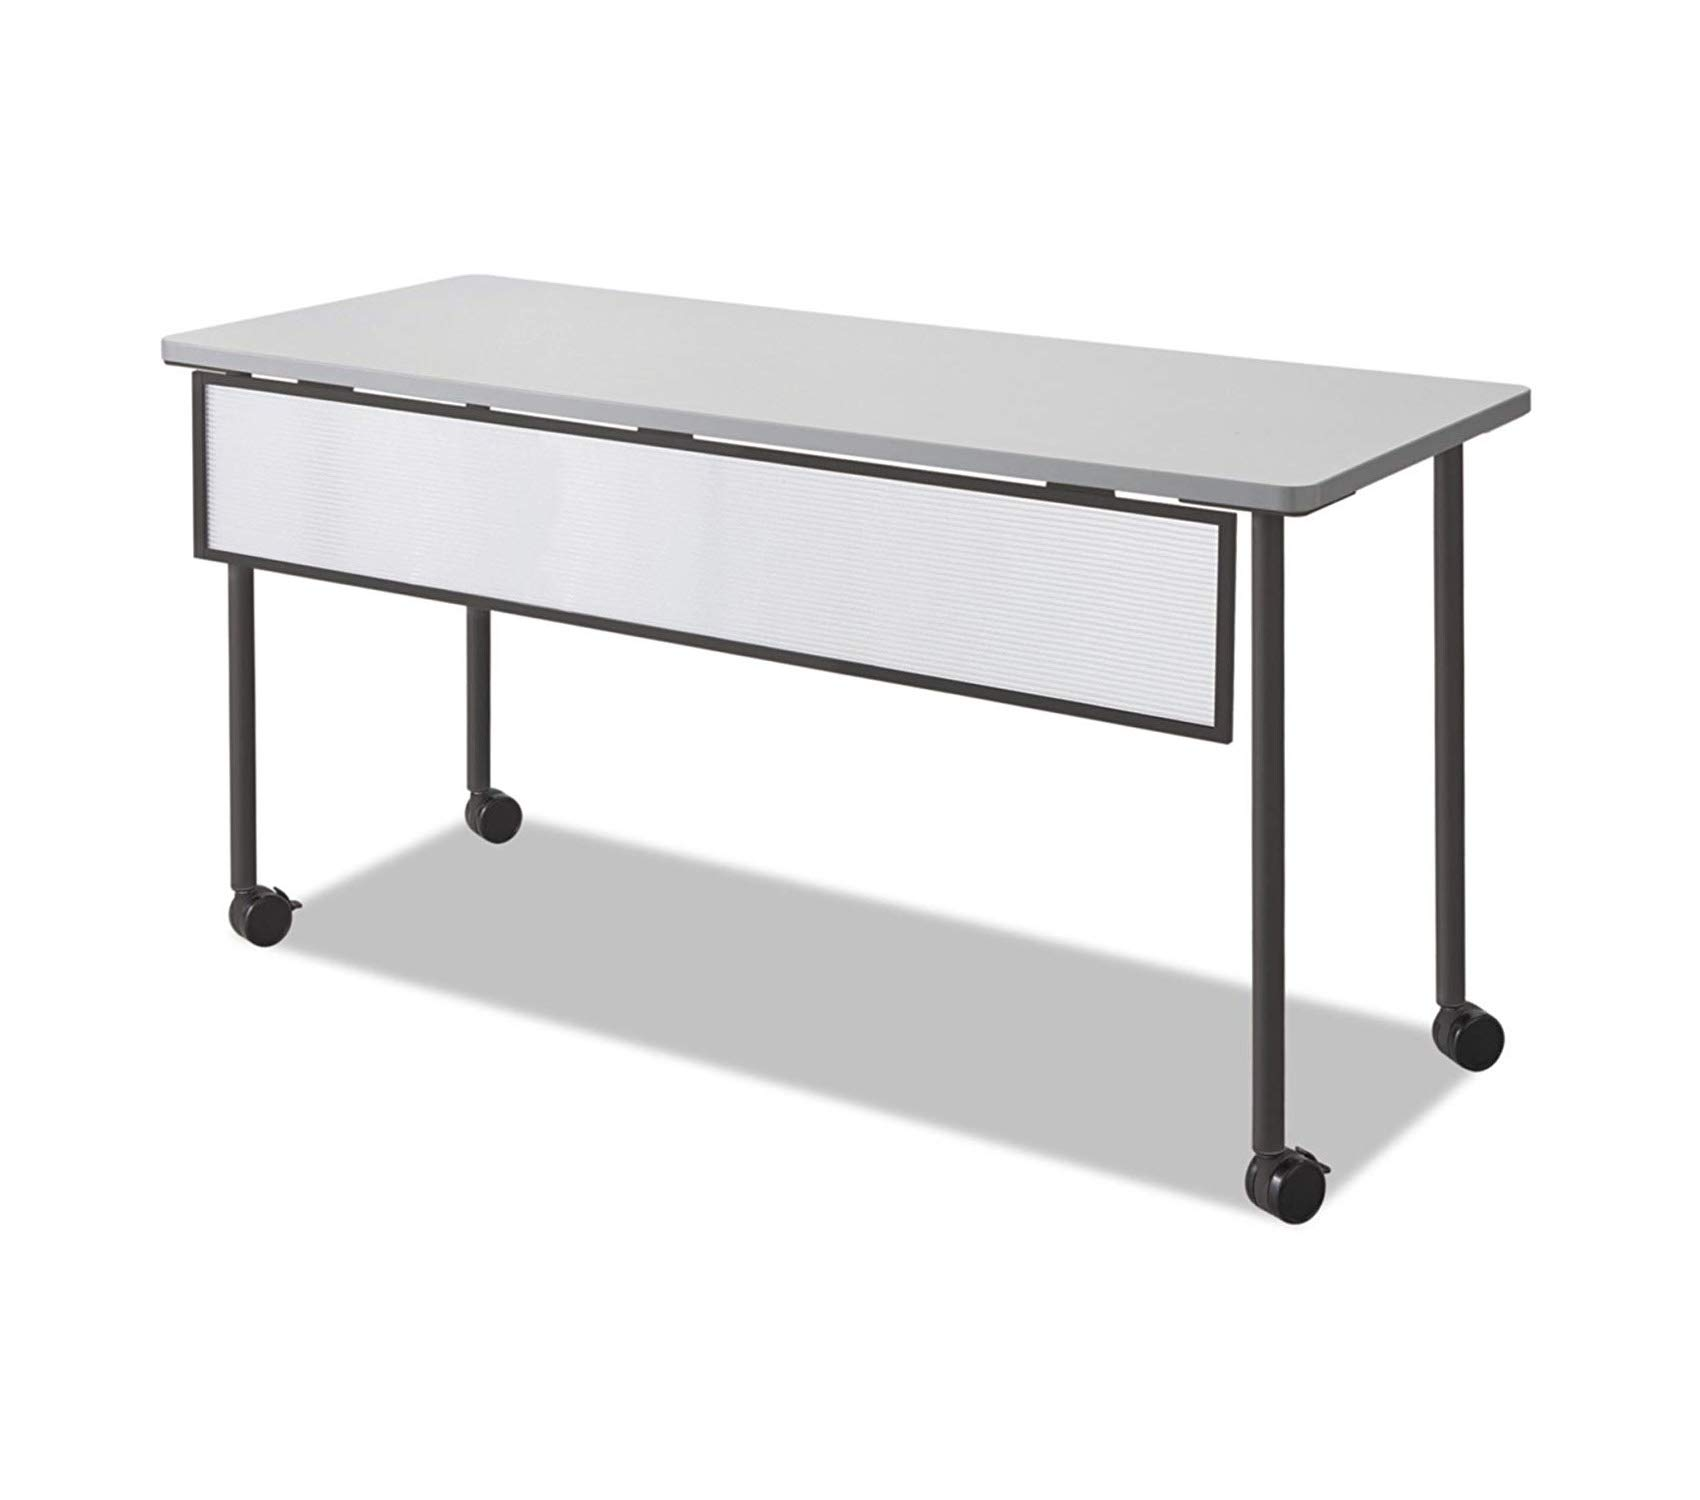 Sаfcо Prоducts Impromptu Mobile Training Table Modesty Panel for 60W Table (Table Top and Base Sold Separately), Black Frame